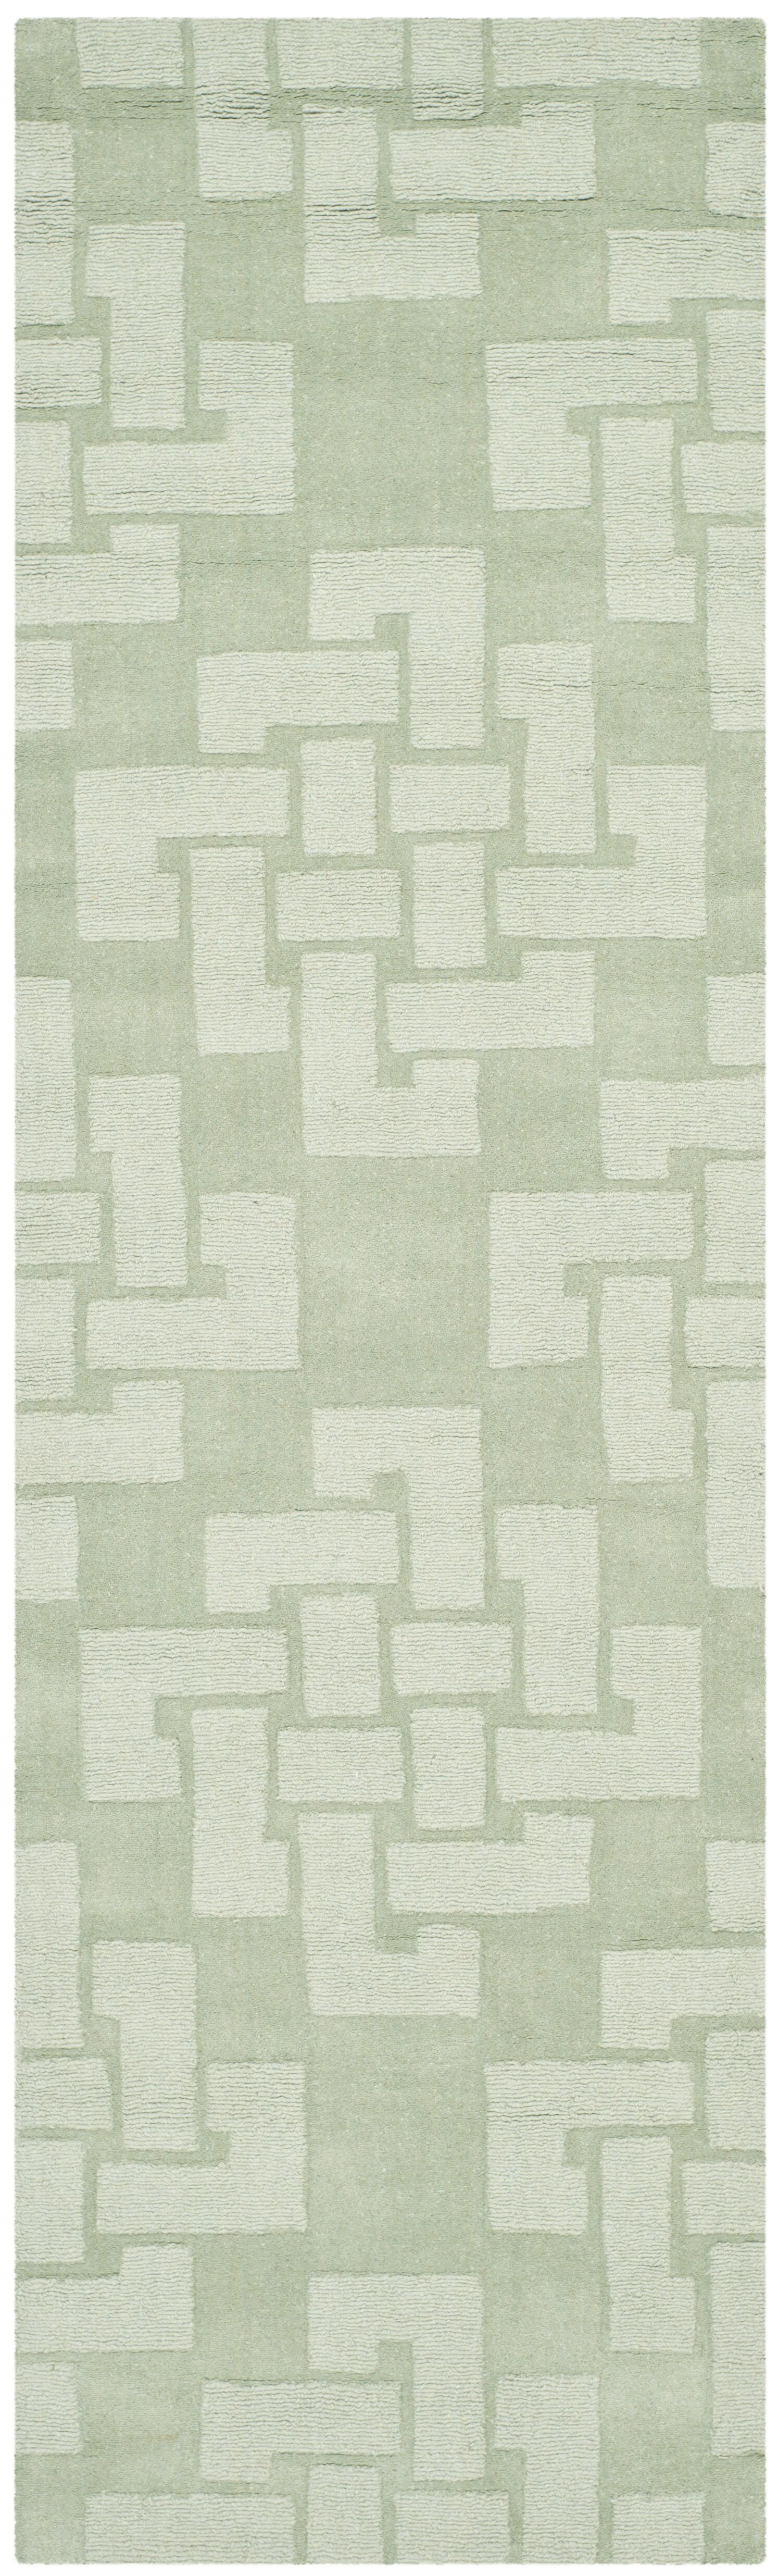 Knot Hand-Tufted Sea Anemone Area Rug Rug Size: Runner 2'3